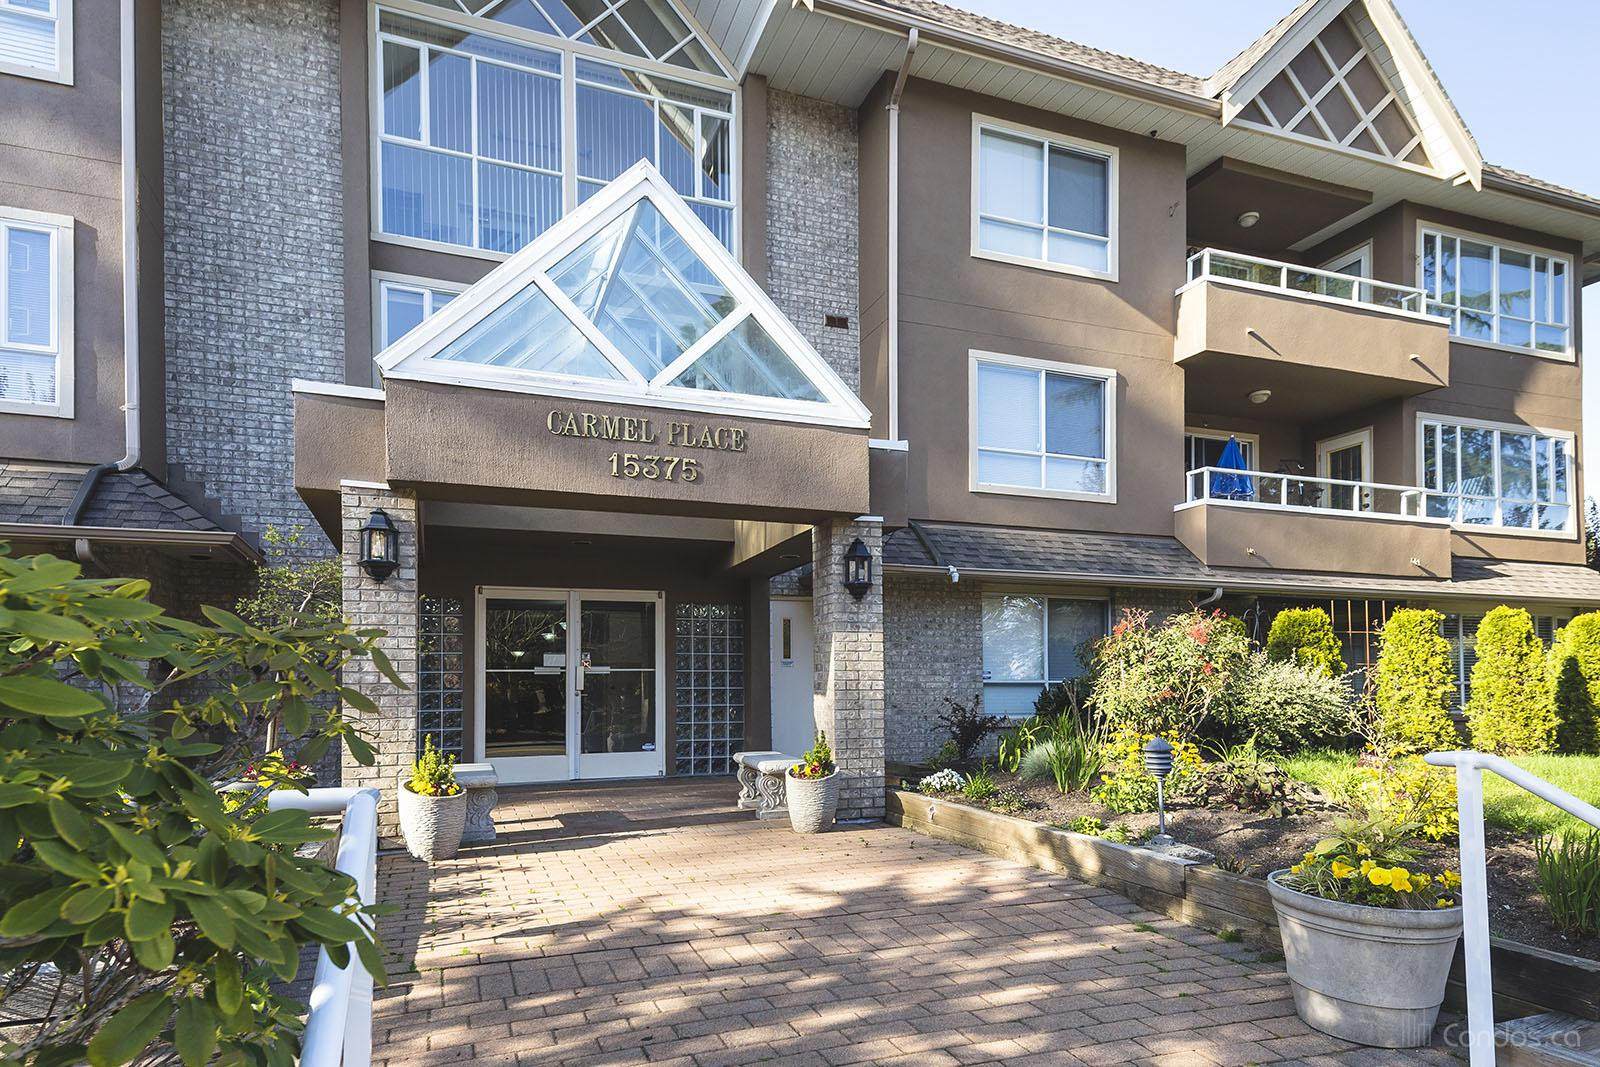 Carmel Place at 15375 17 Ave, Surrey 1